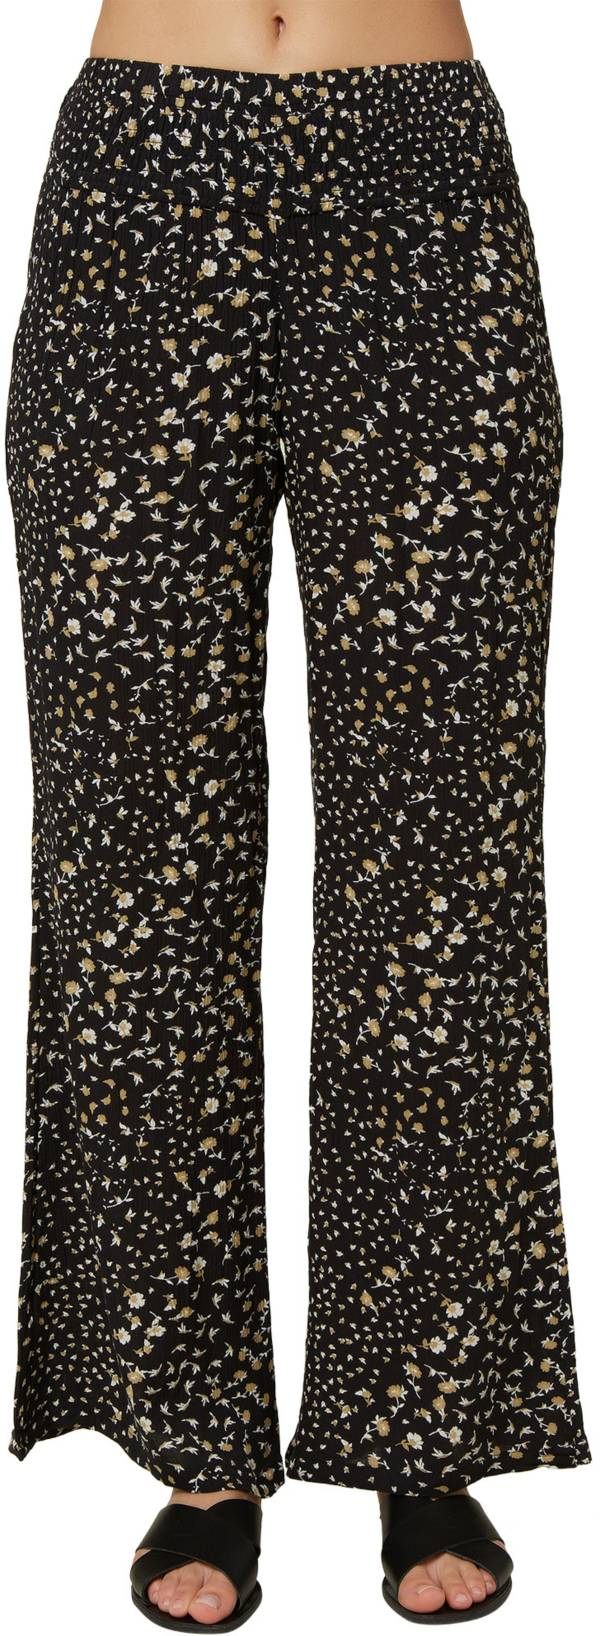 O'Neill Women's Johnny Ditsy Floral Pants product image